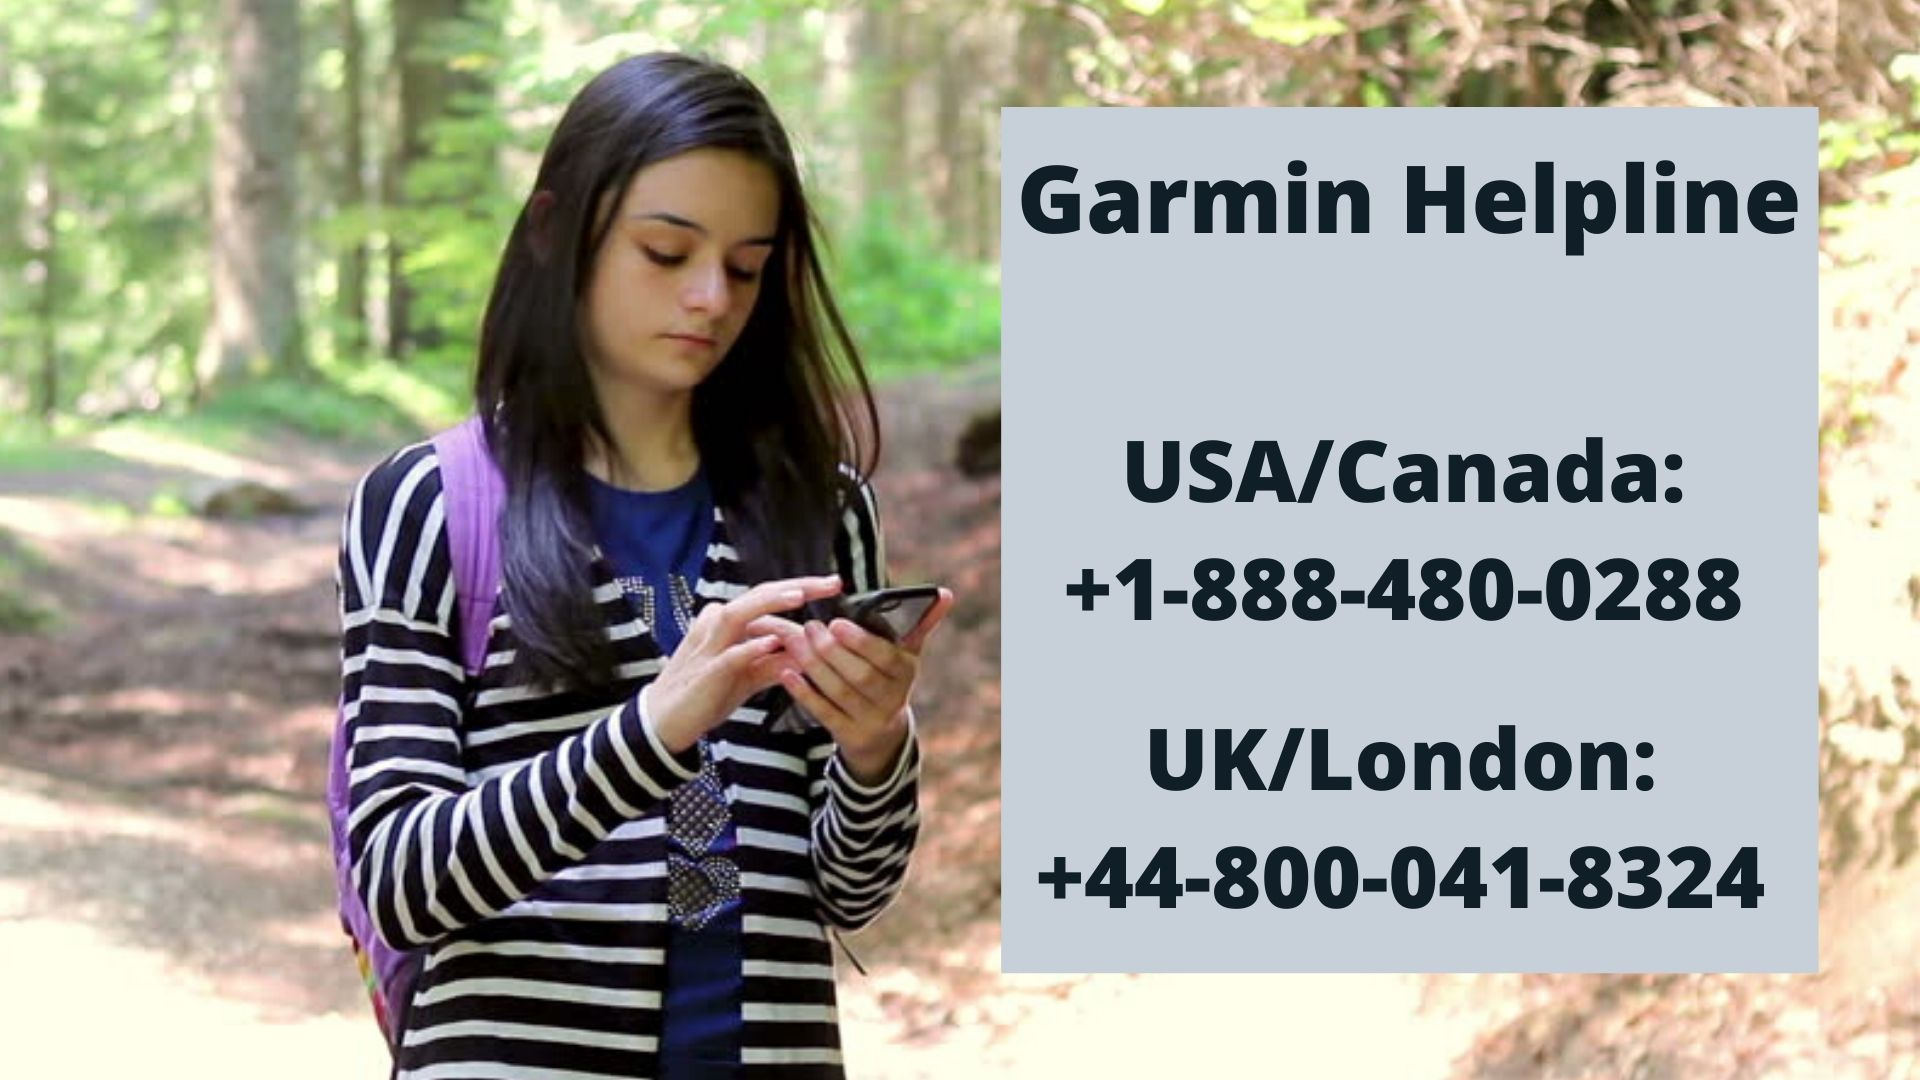 How to Update Garmin Maps - A Step-by-Step Guide